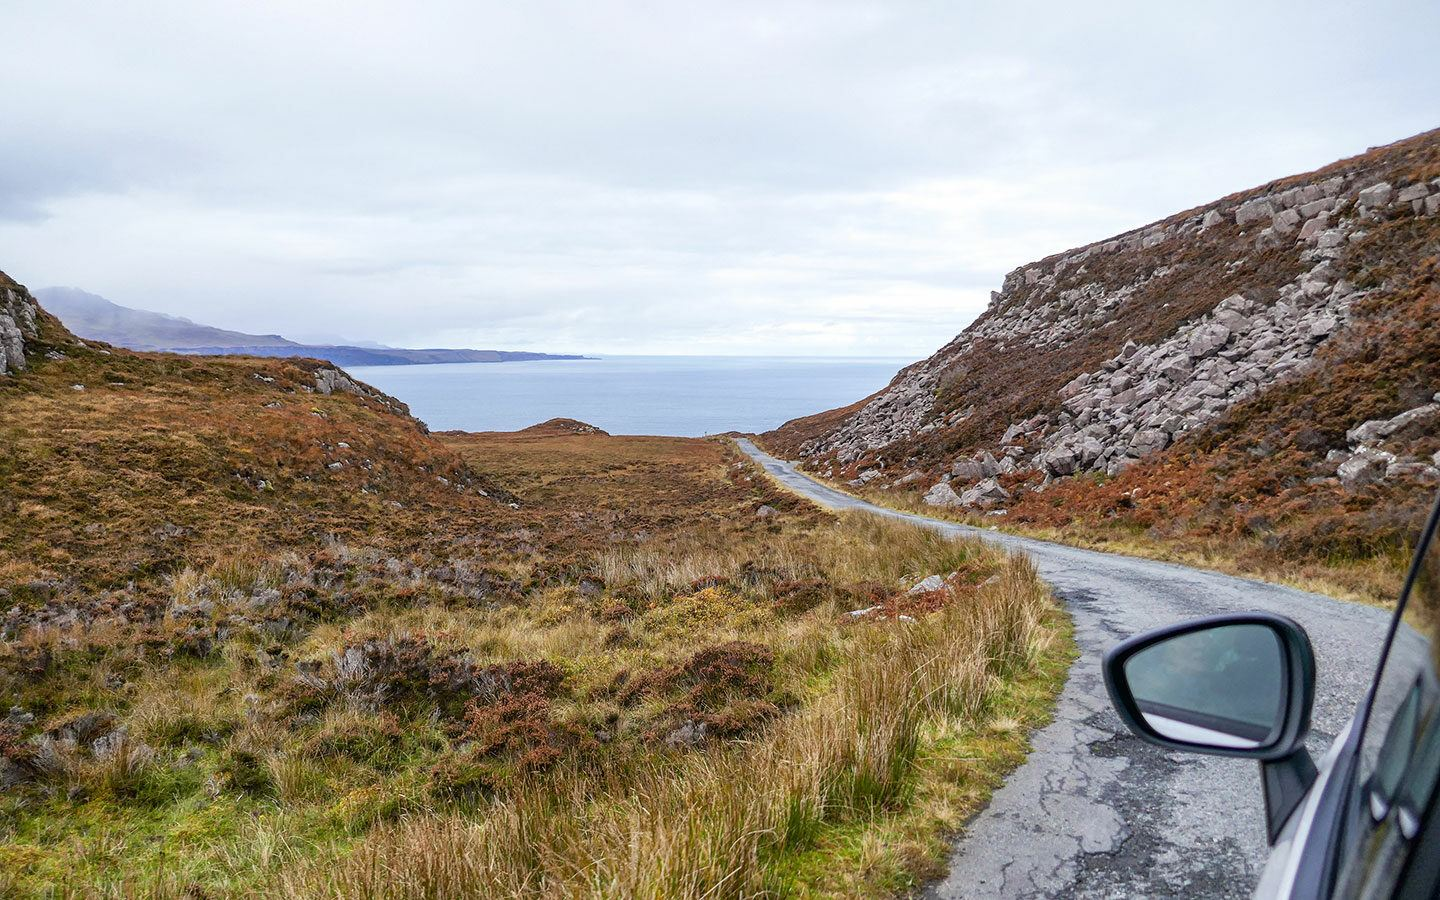 Driving on the Isle of Raasay on a day trip from the Isle of Skye